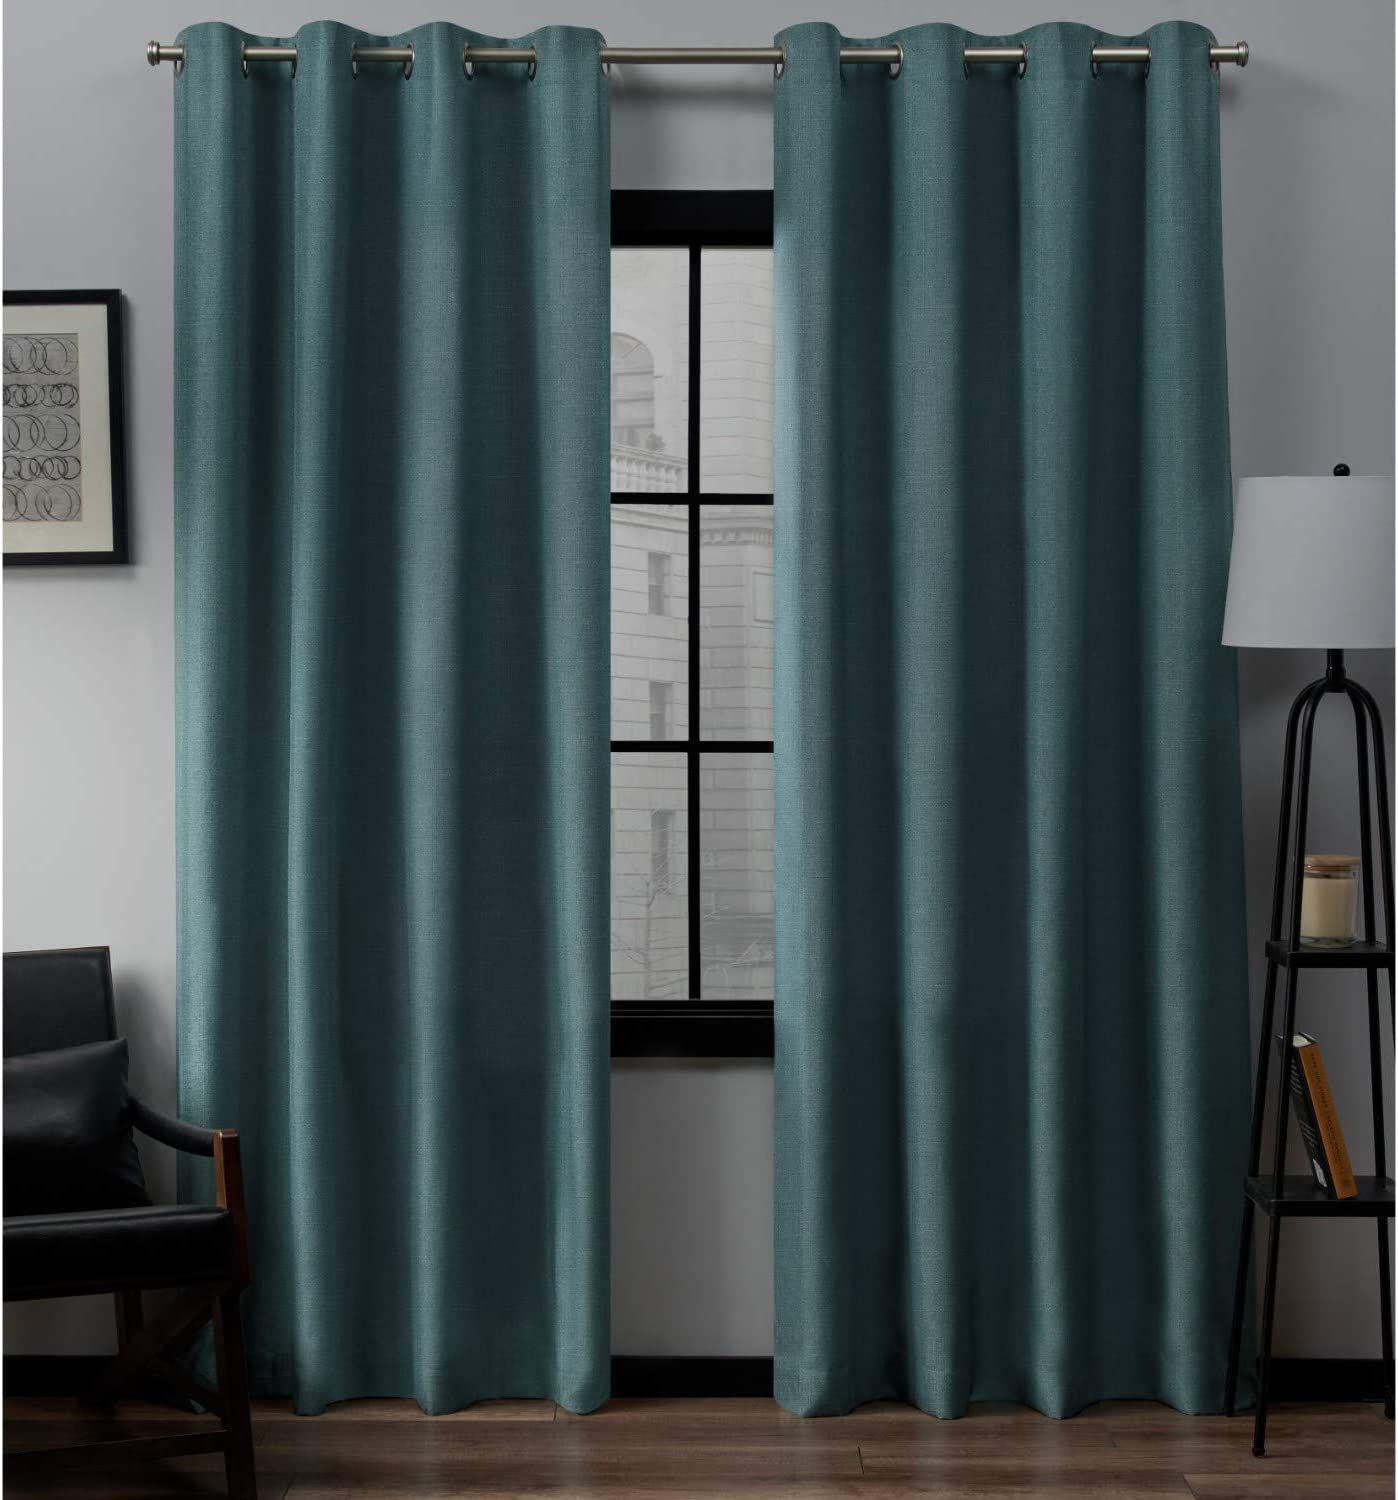 Exclusive Home Curtains Loha Linen Grommet Top Curtain Panel Pair, 54x96, Blue Teal